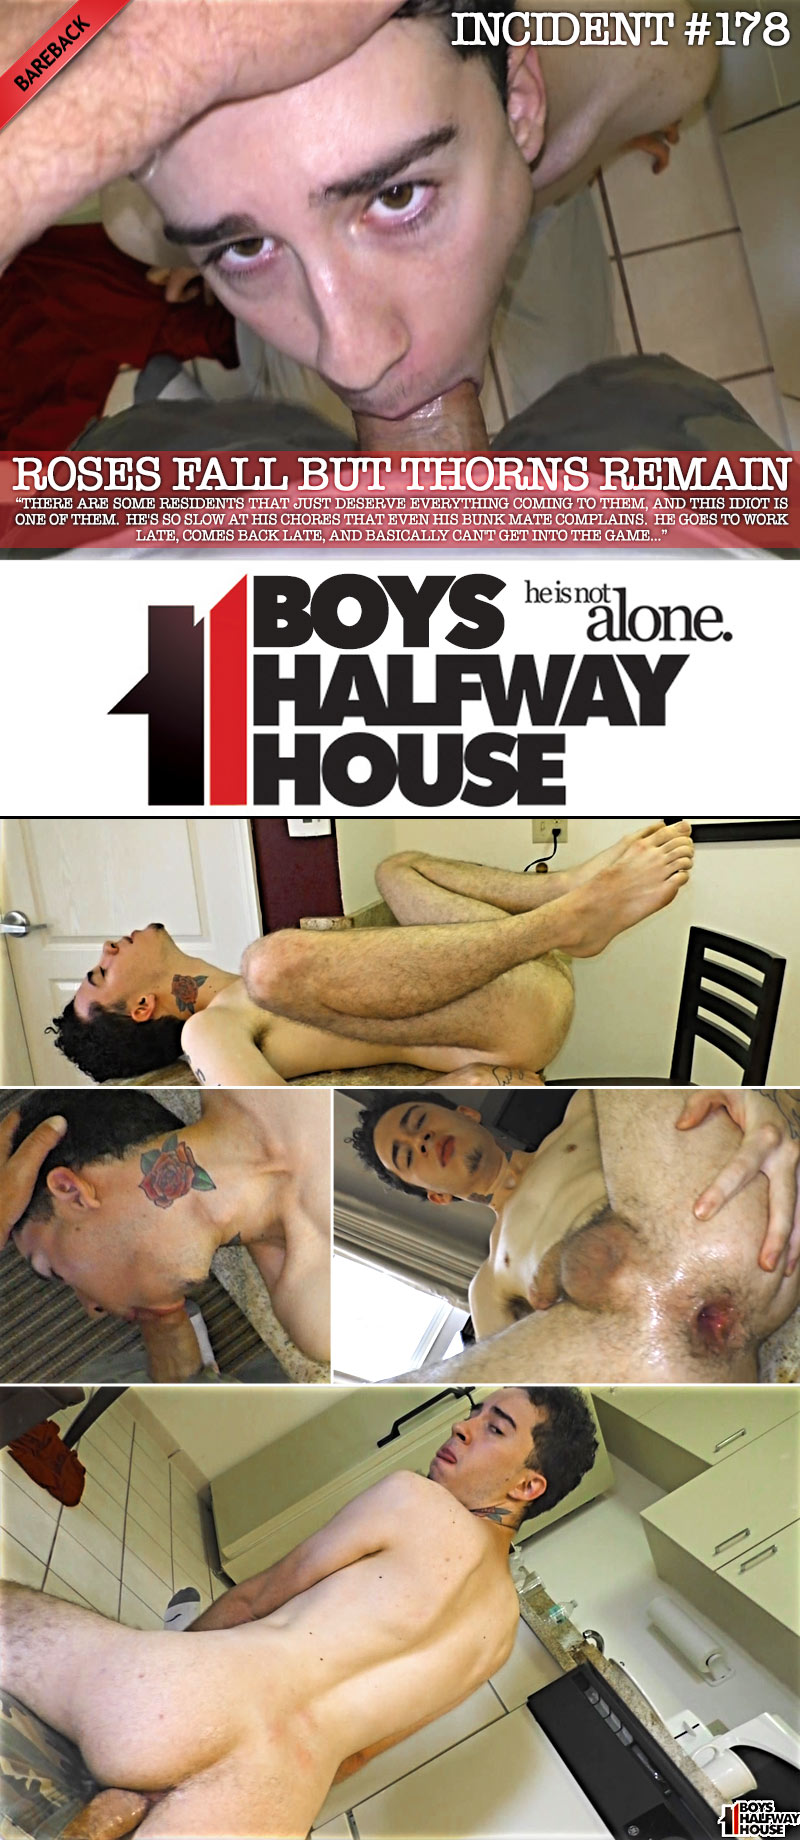 Incident #178: Roses Fall But Thorns Remain (feat. Jayden Black) at Boys Halfway House